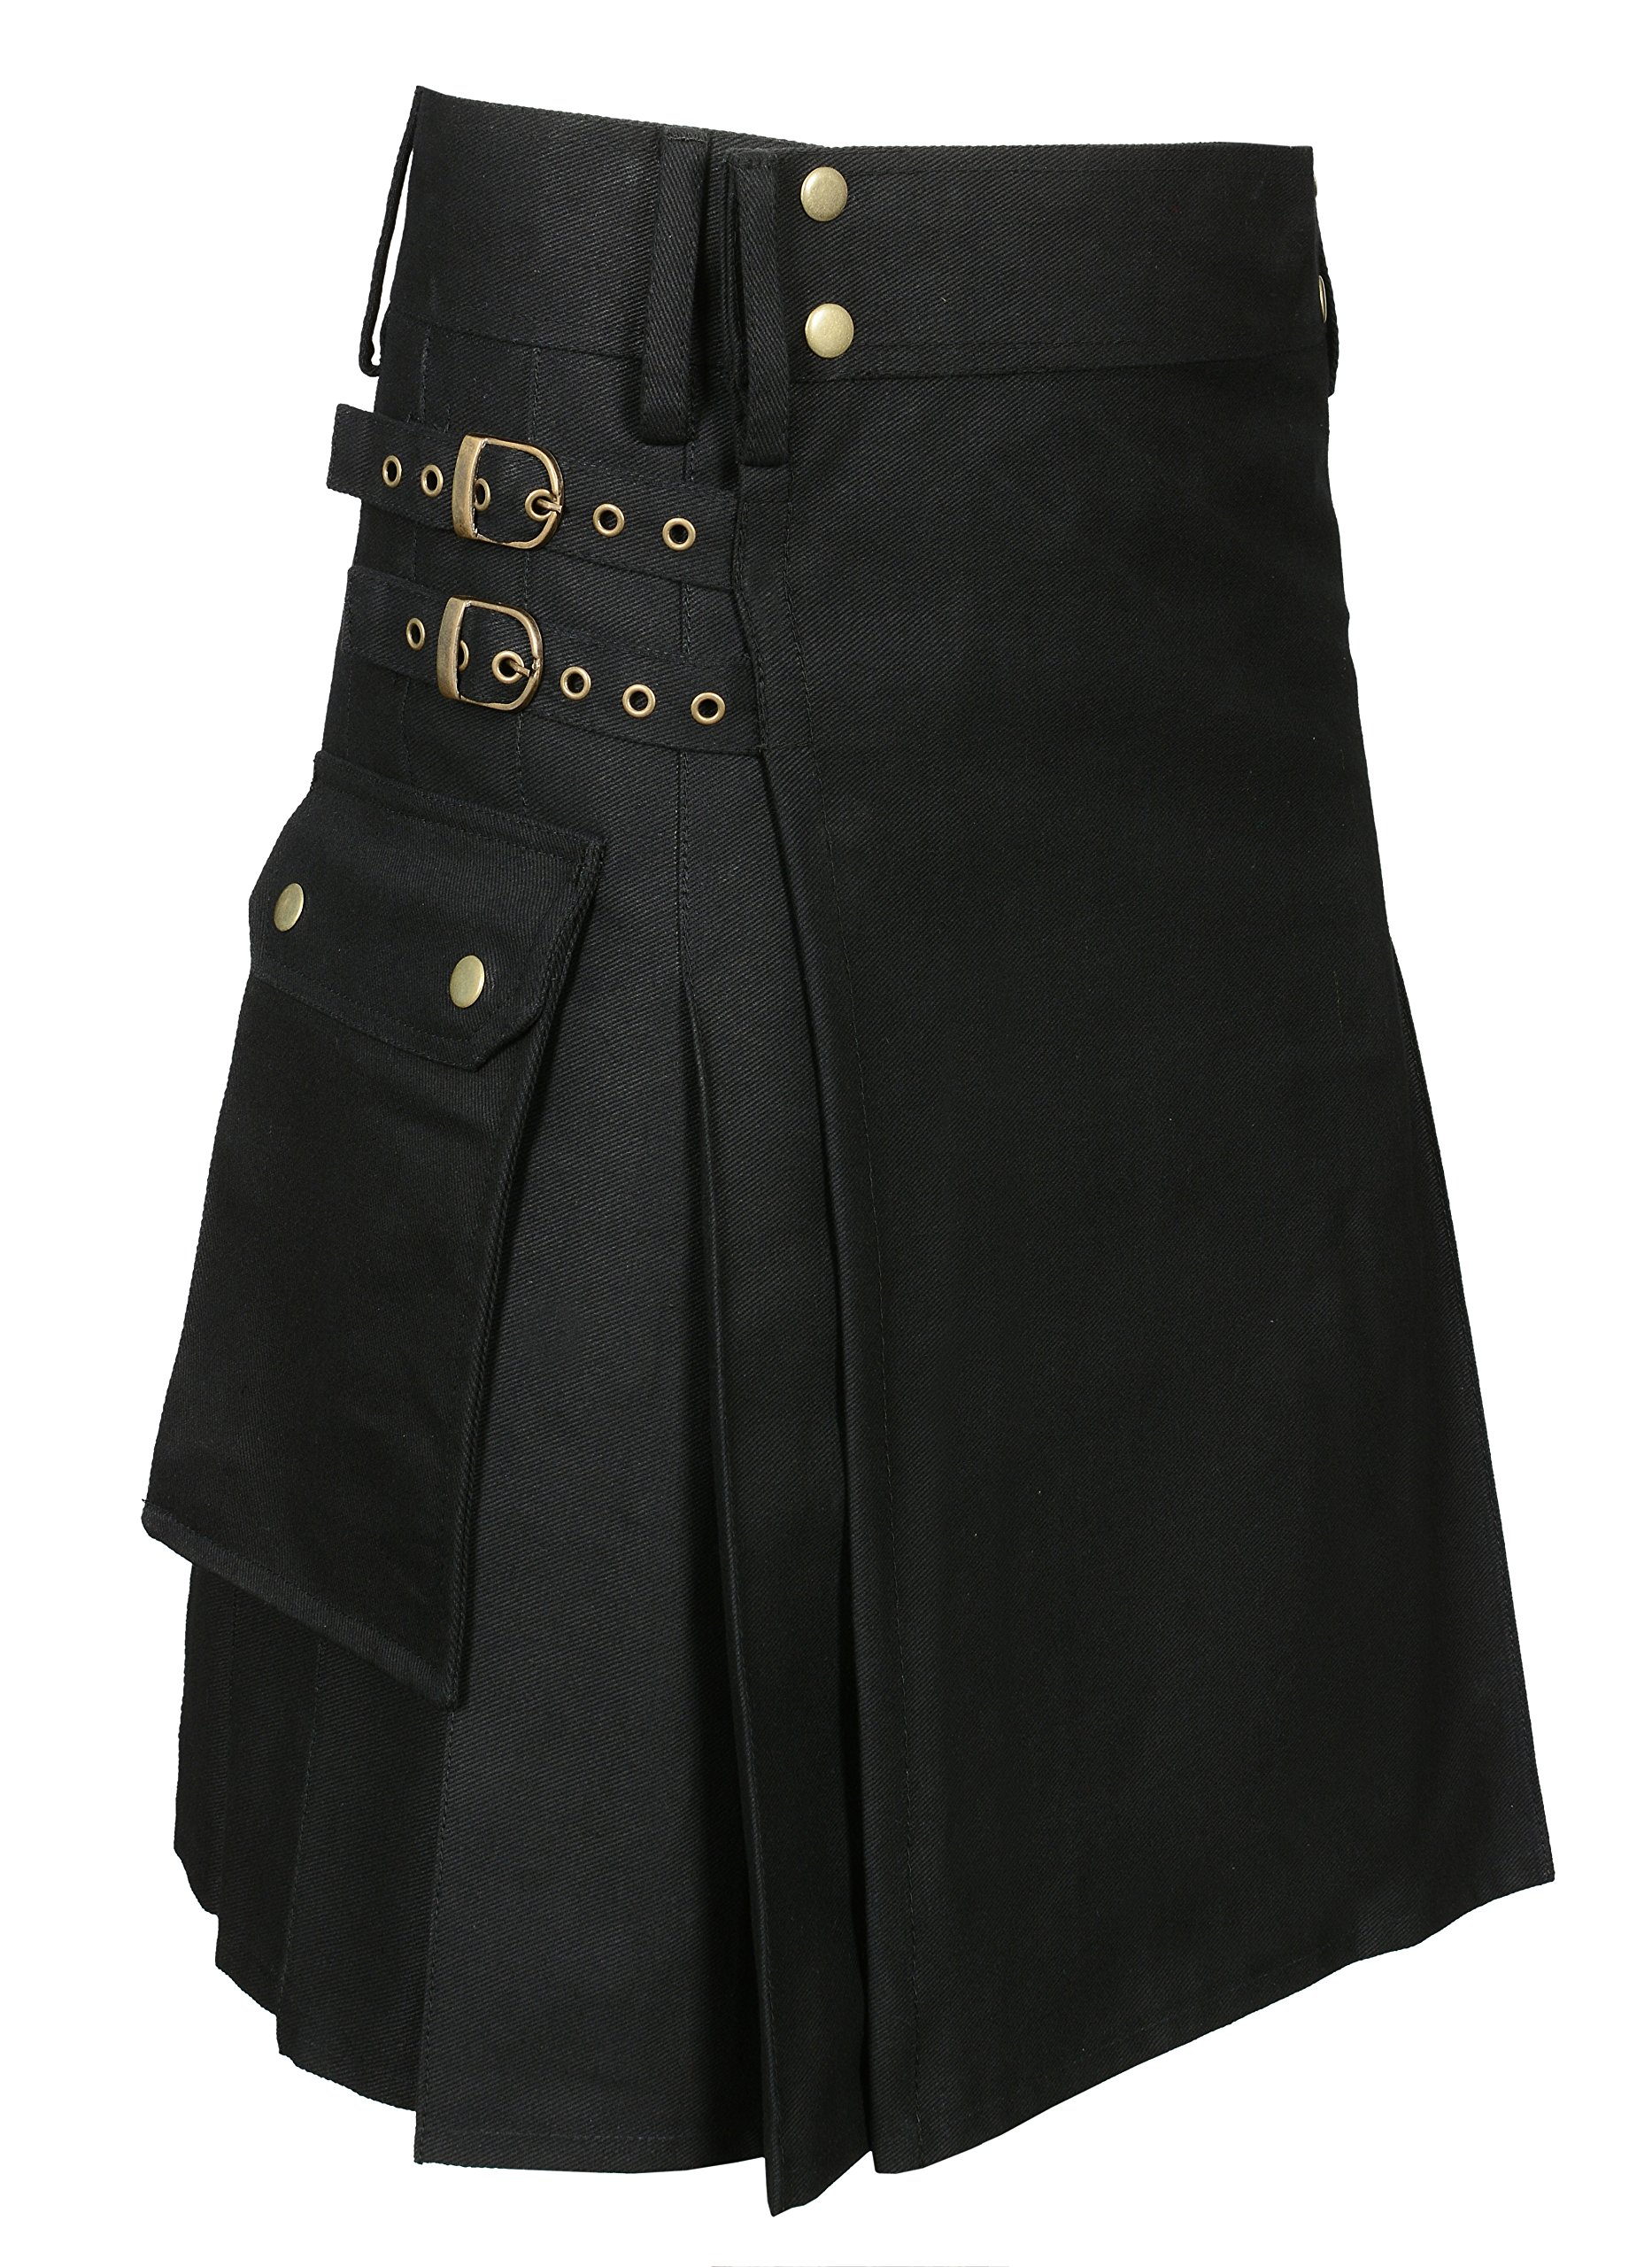 Utility Kilt Black New Size 34 by Cloud Enterprises